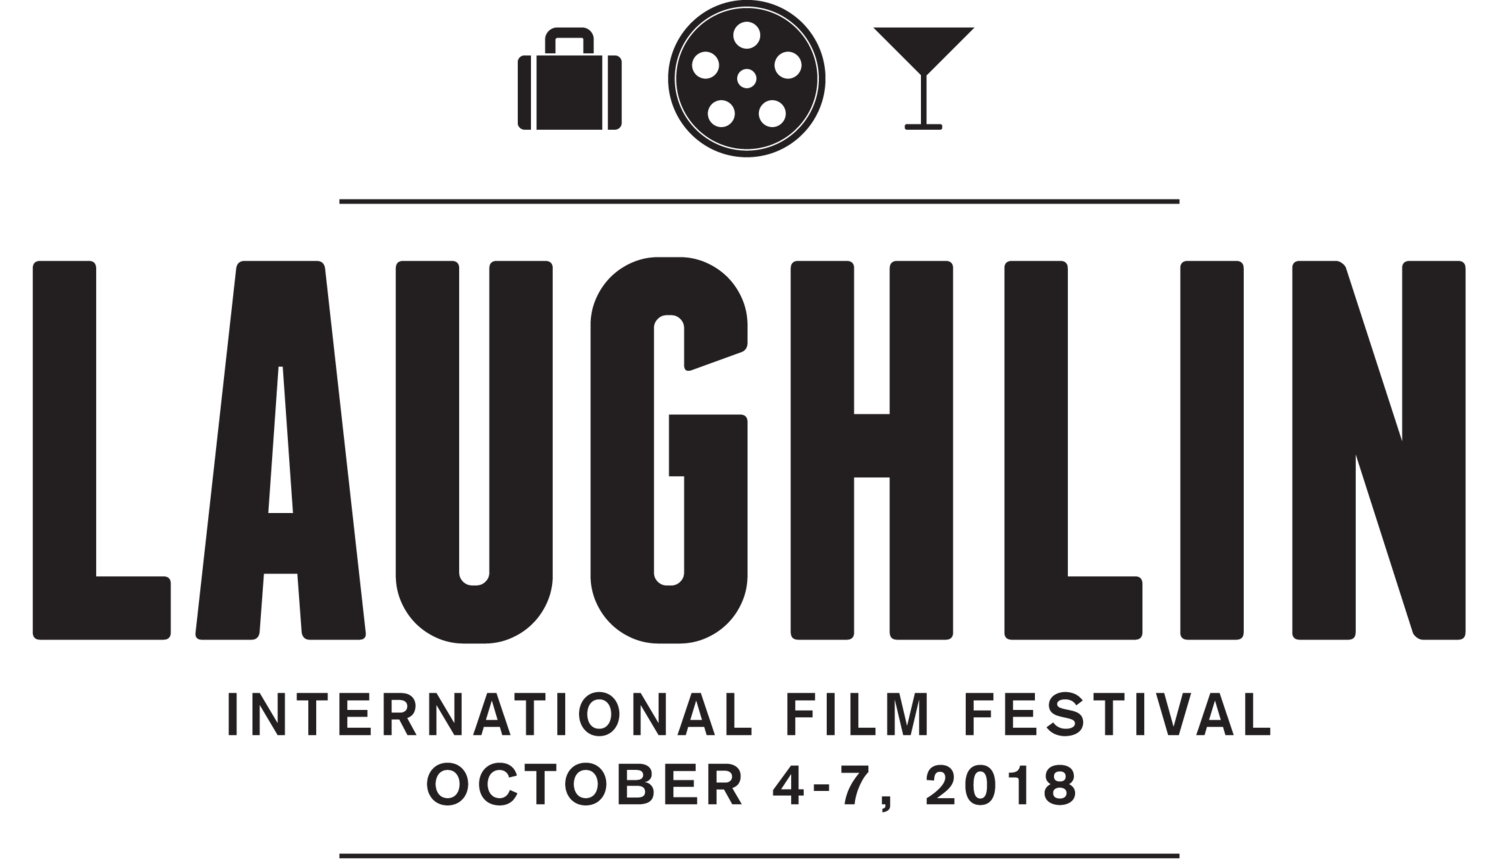 Laughlin International Film Festival